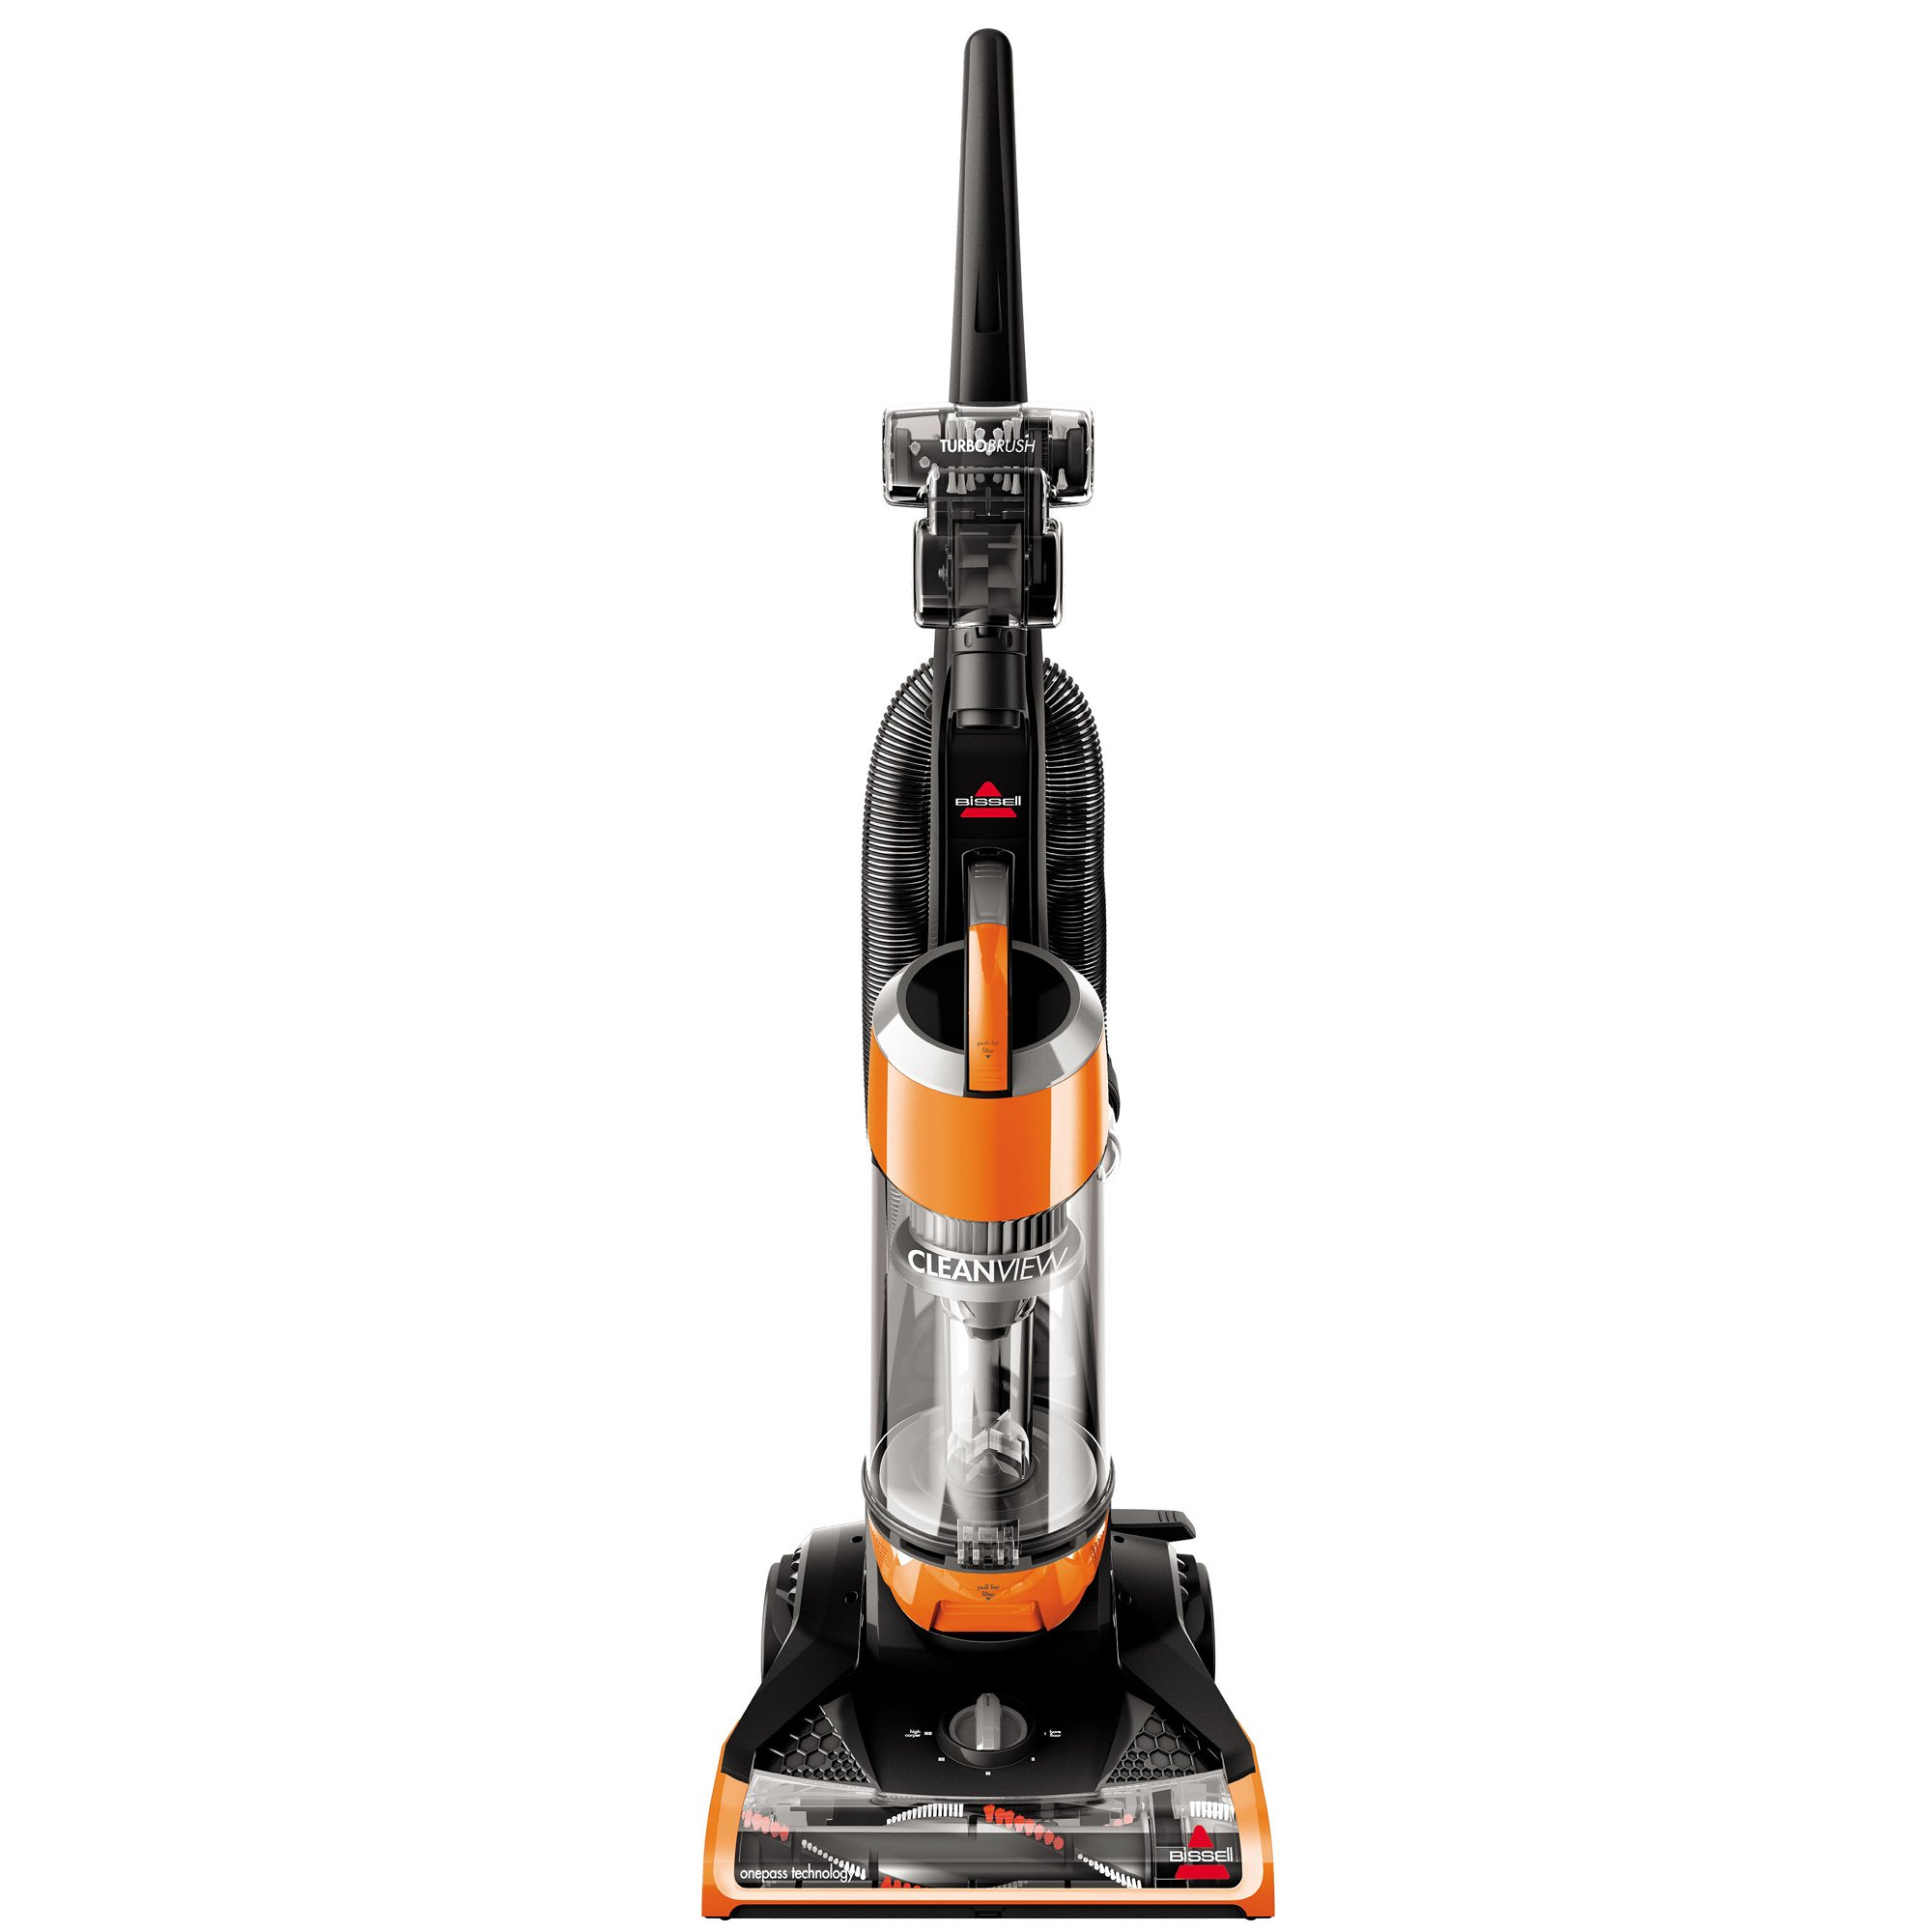 Bissell Cleanview Upright Bagless Vacuum Cleaner OnePass Technology, 1831 by Bissell